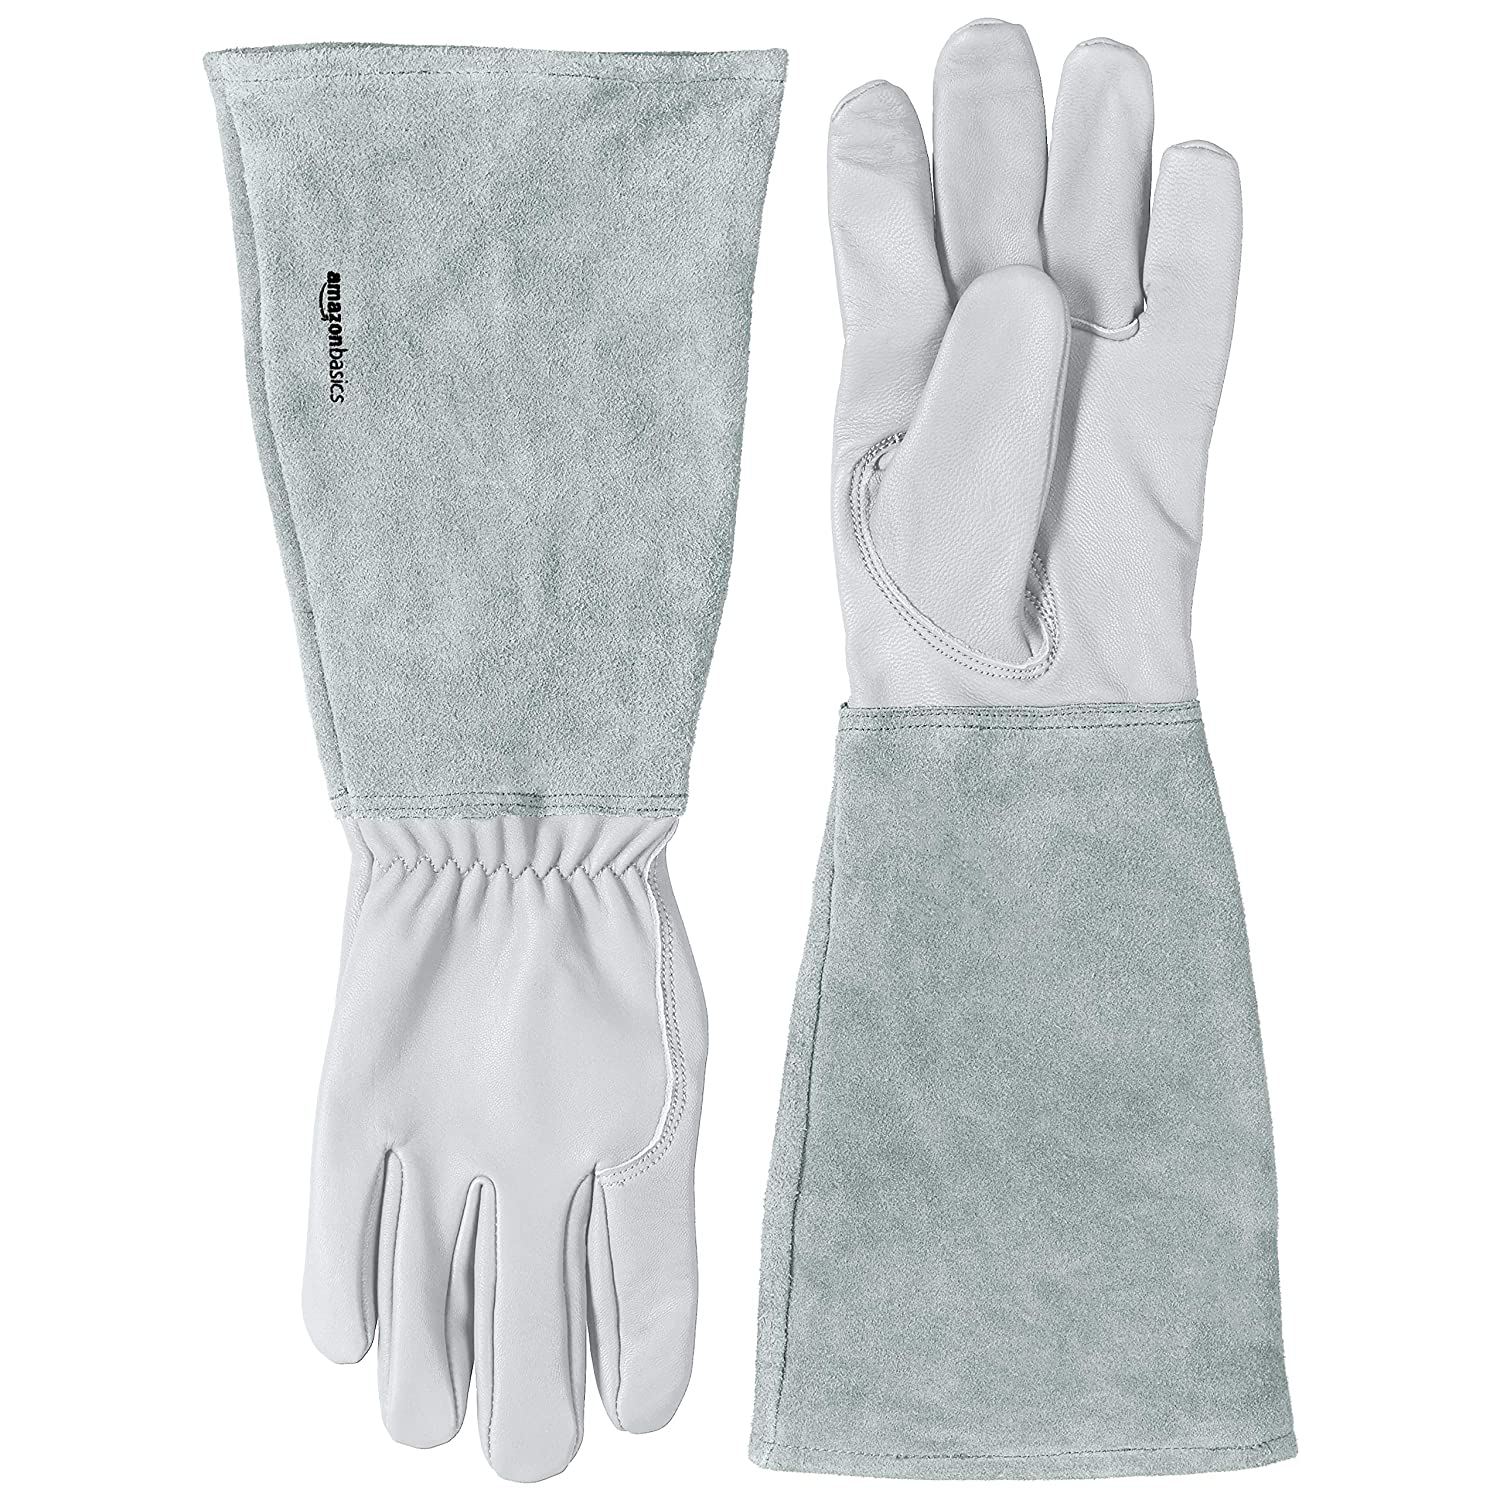 AmazonBasics Leather Gardening Gloves with Forearm Protection - Natural, XL